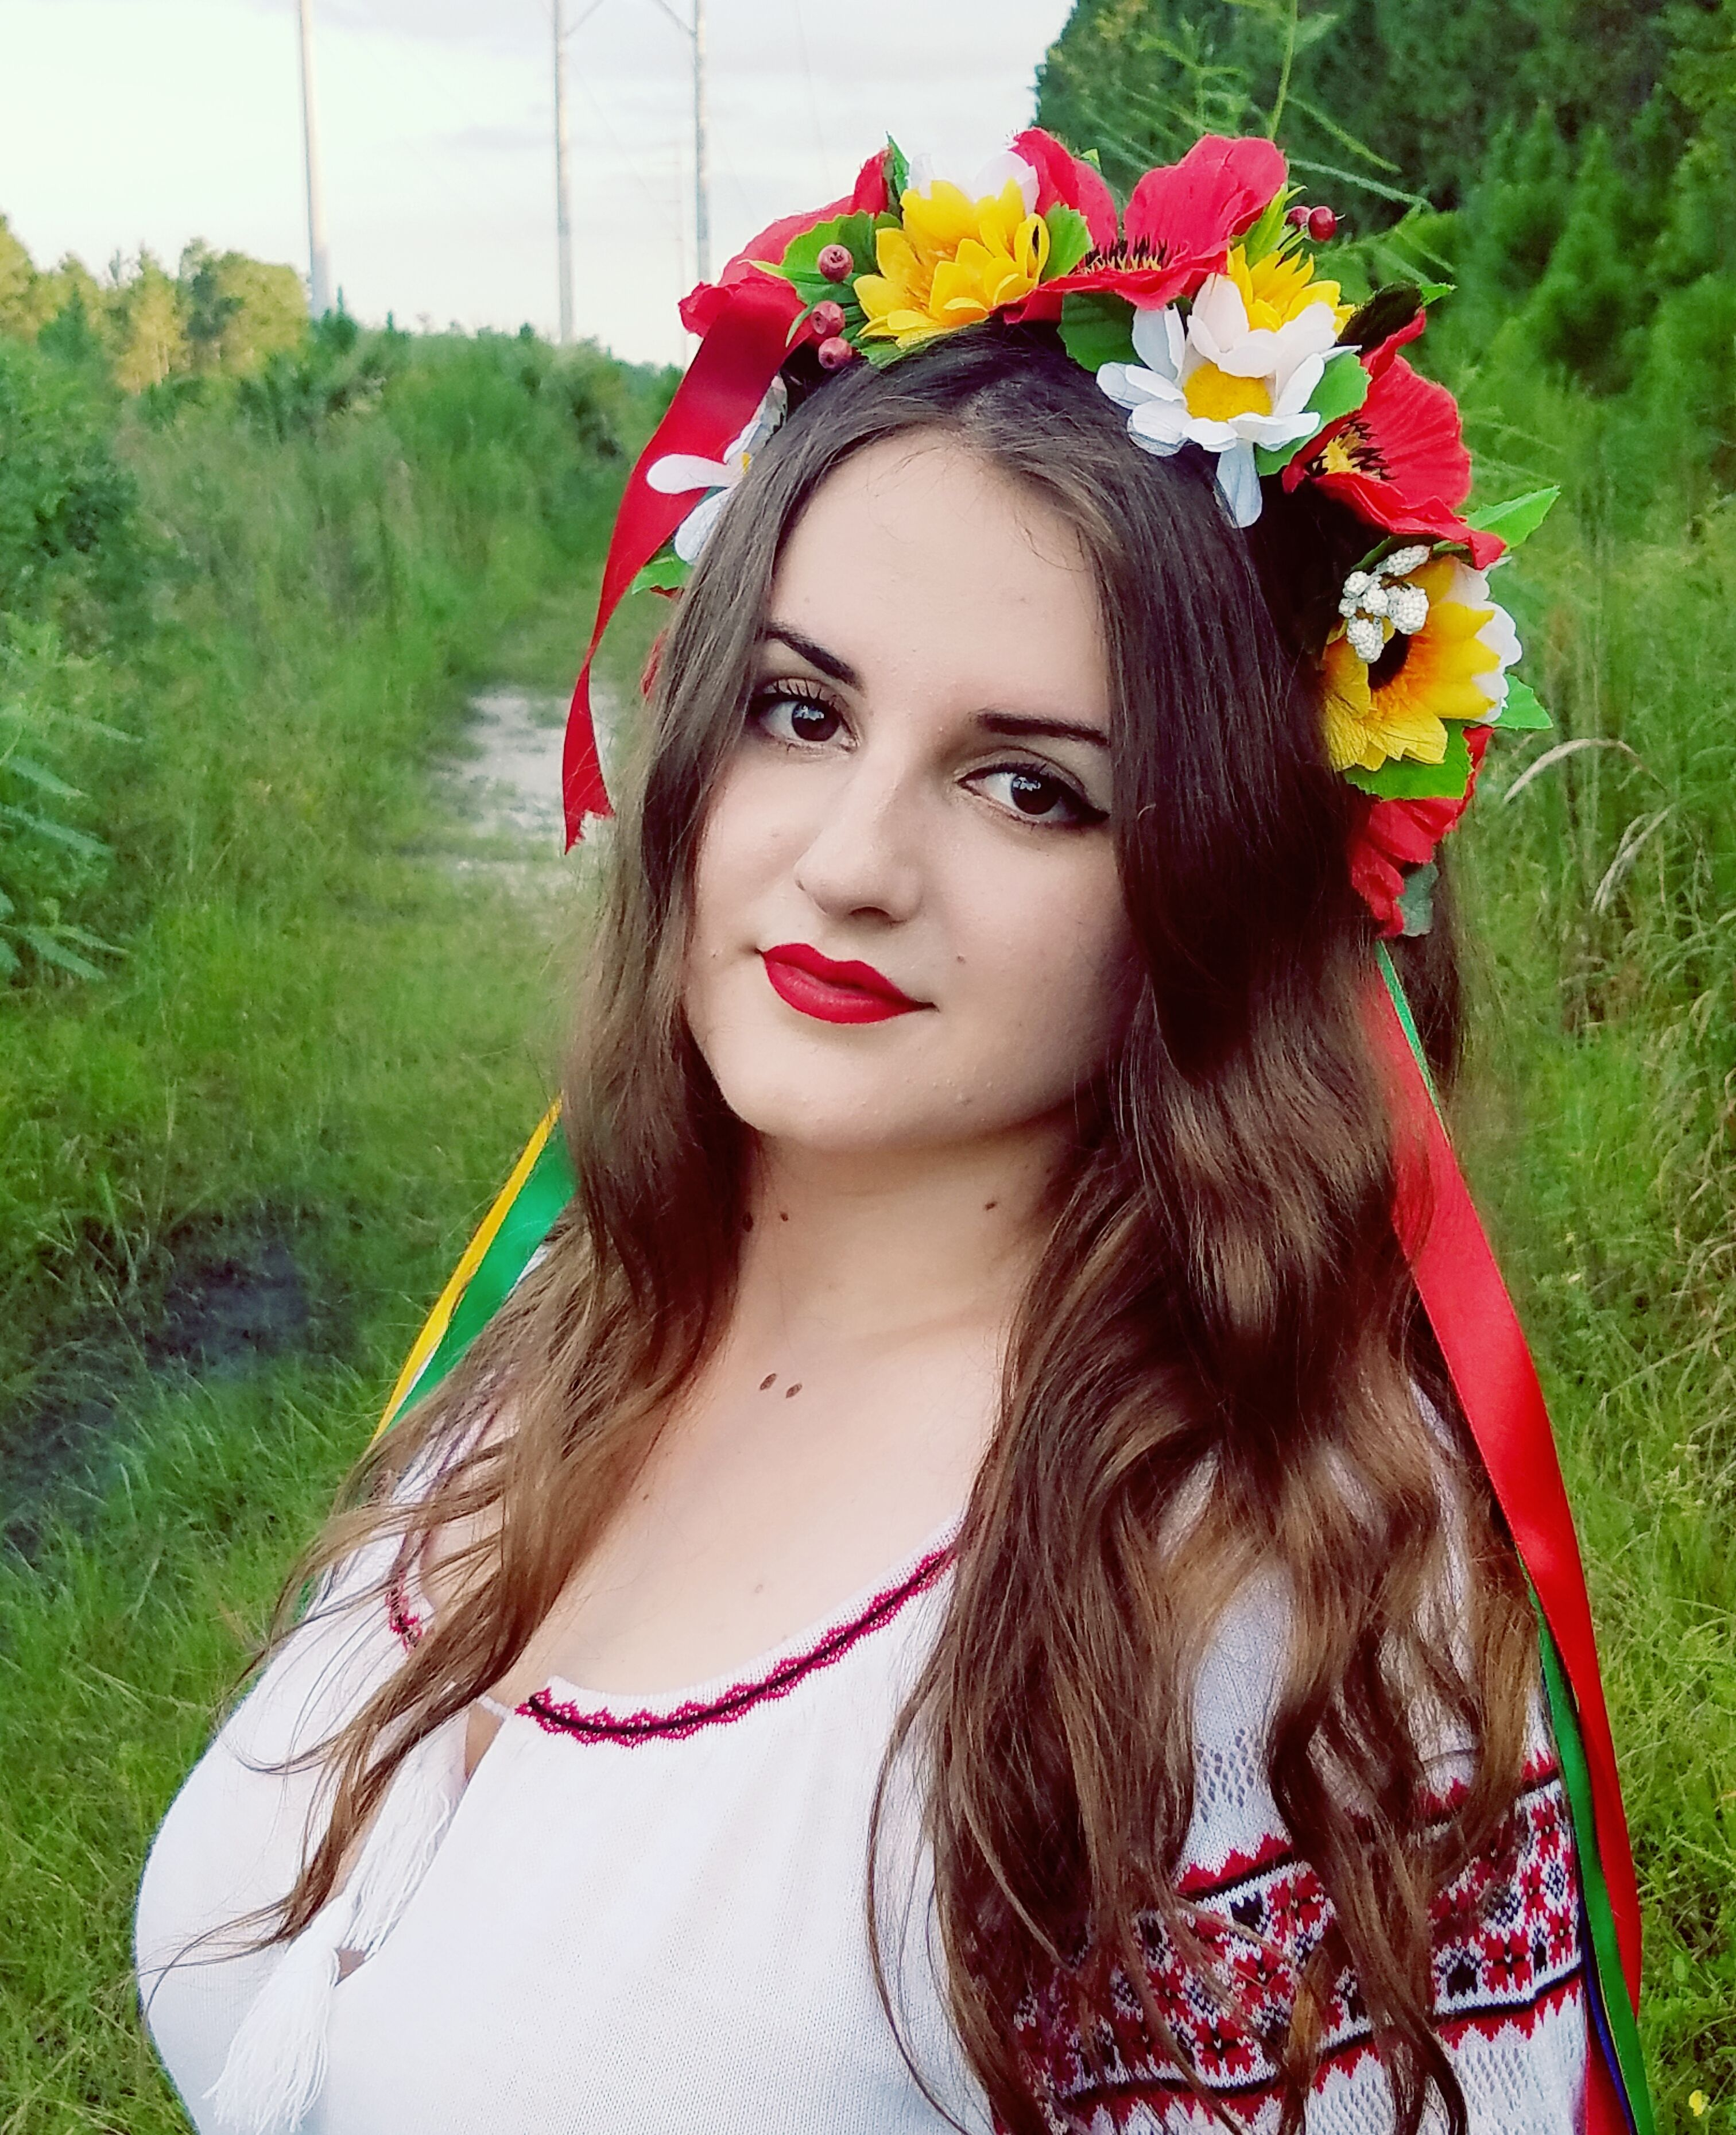 The Best Methods to Use Ukraine Bride in Your House. 19ebf0c7e61c933dfcf15a2d724a5a77